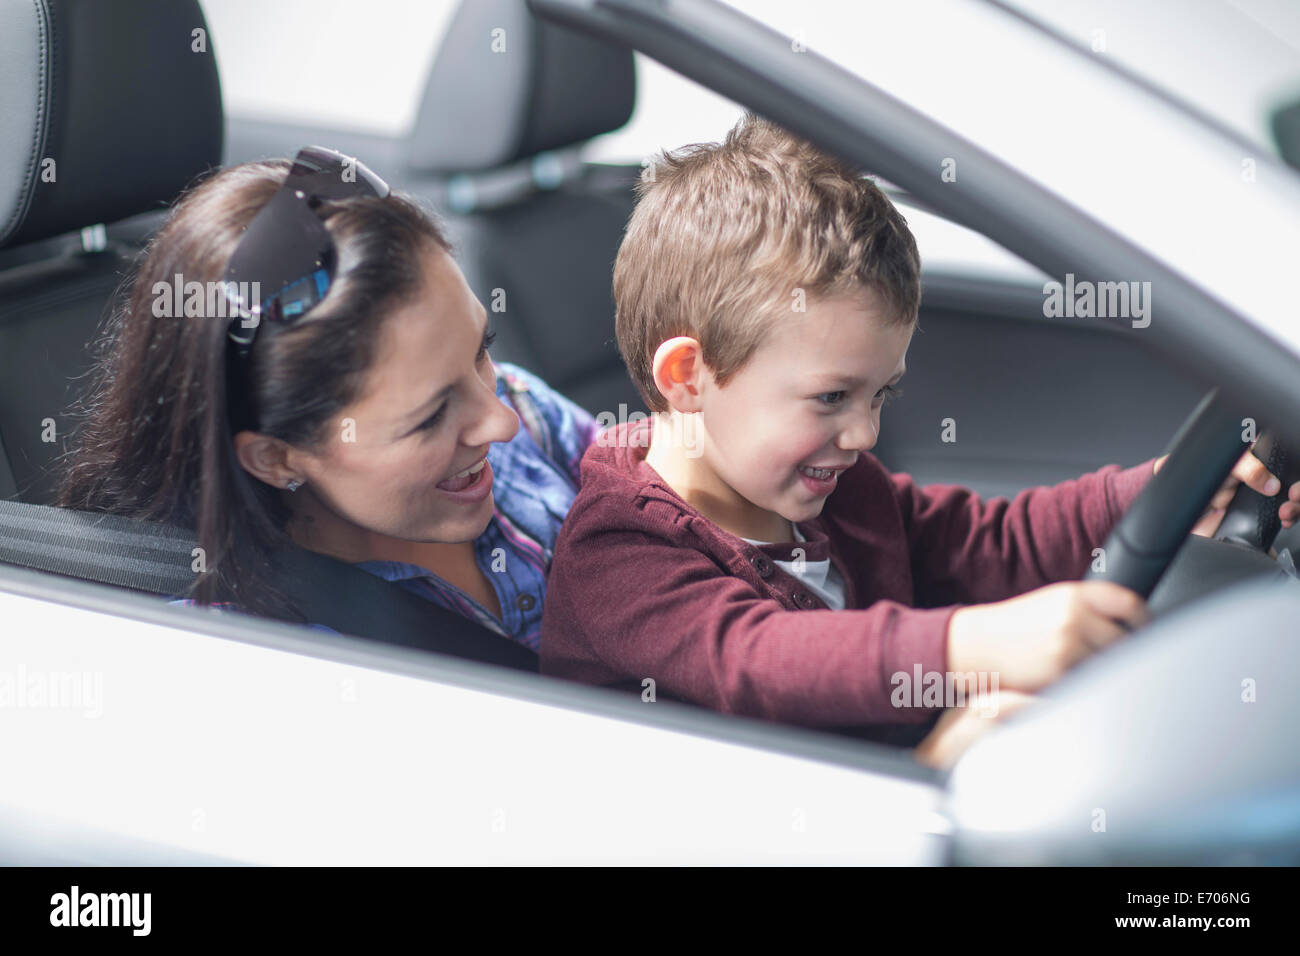 Mother and son trying out new car in car dealership - Stock Image